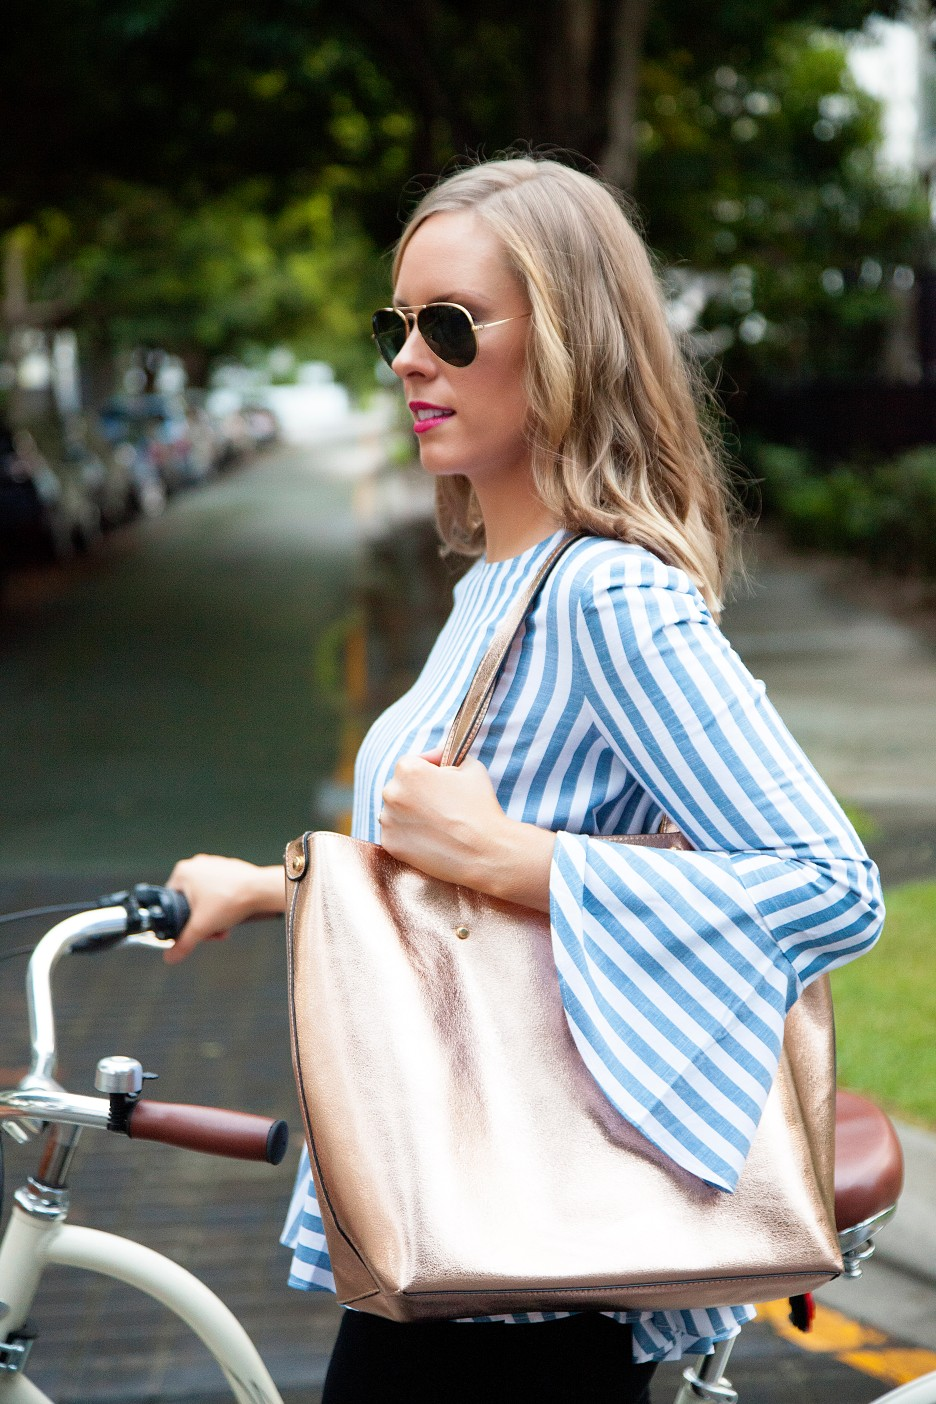 5 Stripe Top Black Jeans and White Converse Sneakers fashion blogger electra bike with basket rose gold tote handbag | One Striped Outfit, Two Ways featured by popular US fashion blogger, Style Elixir